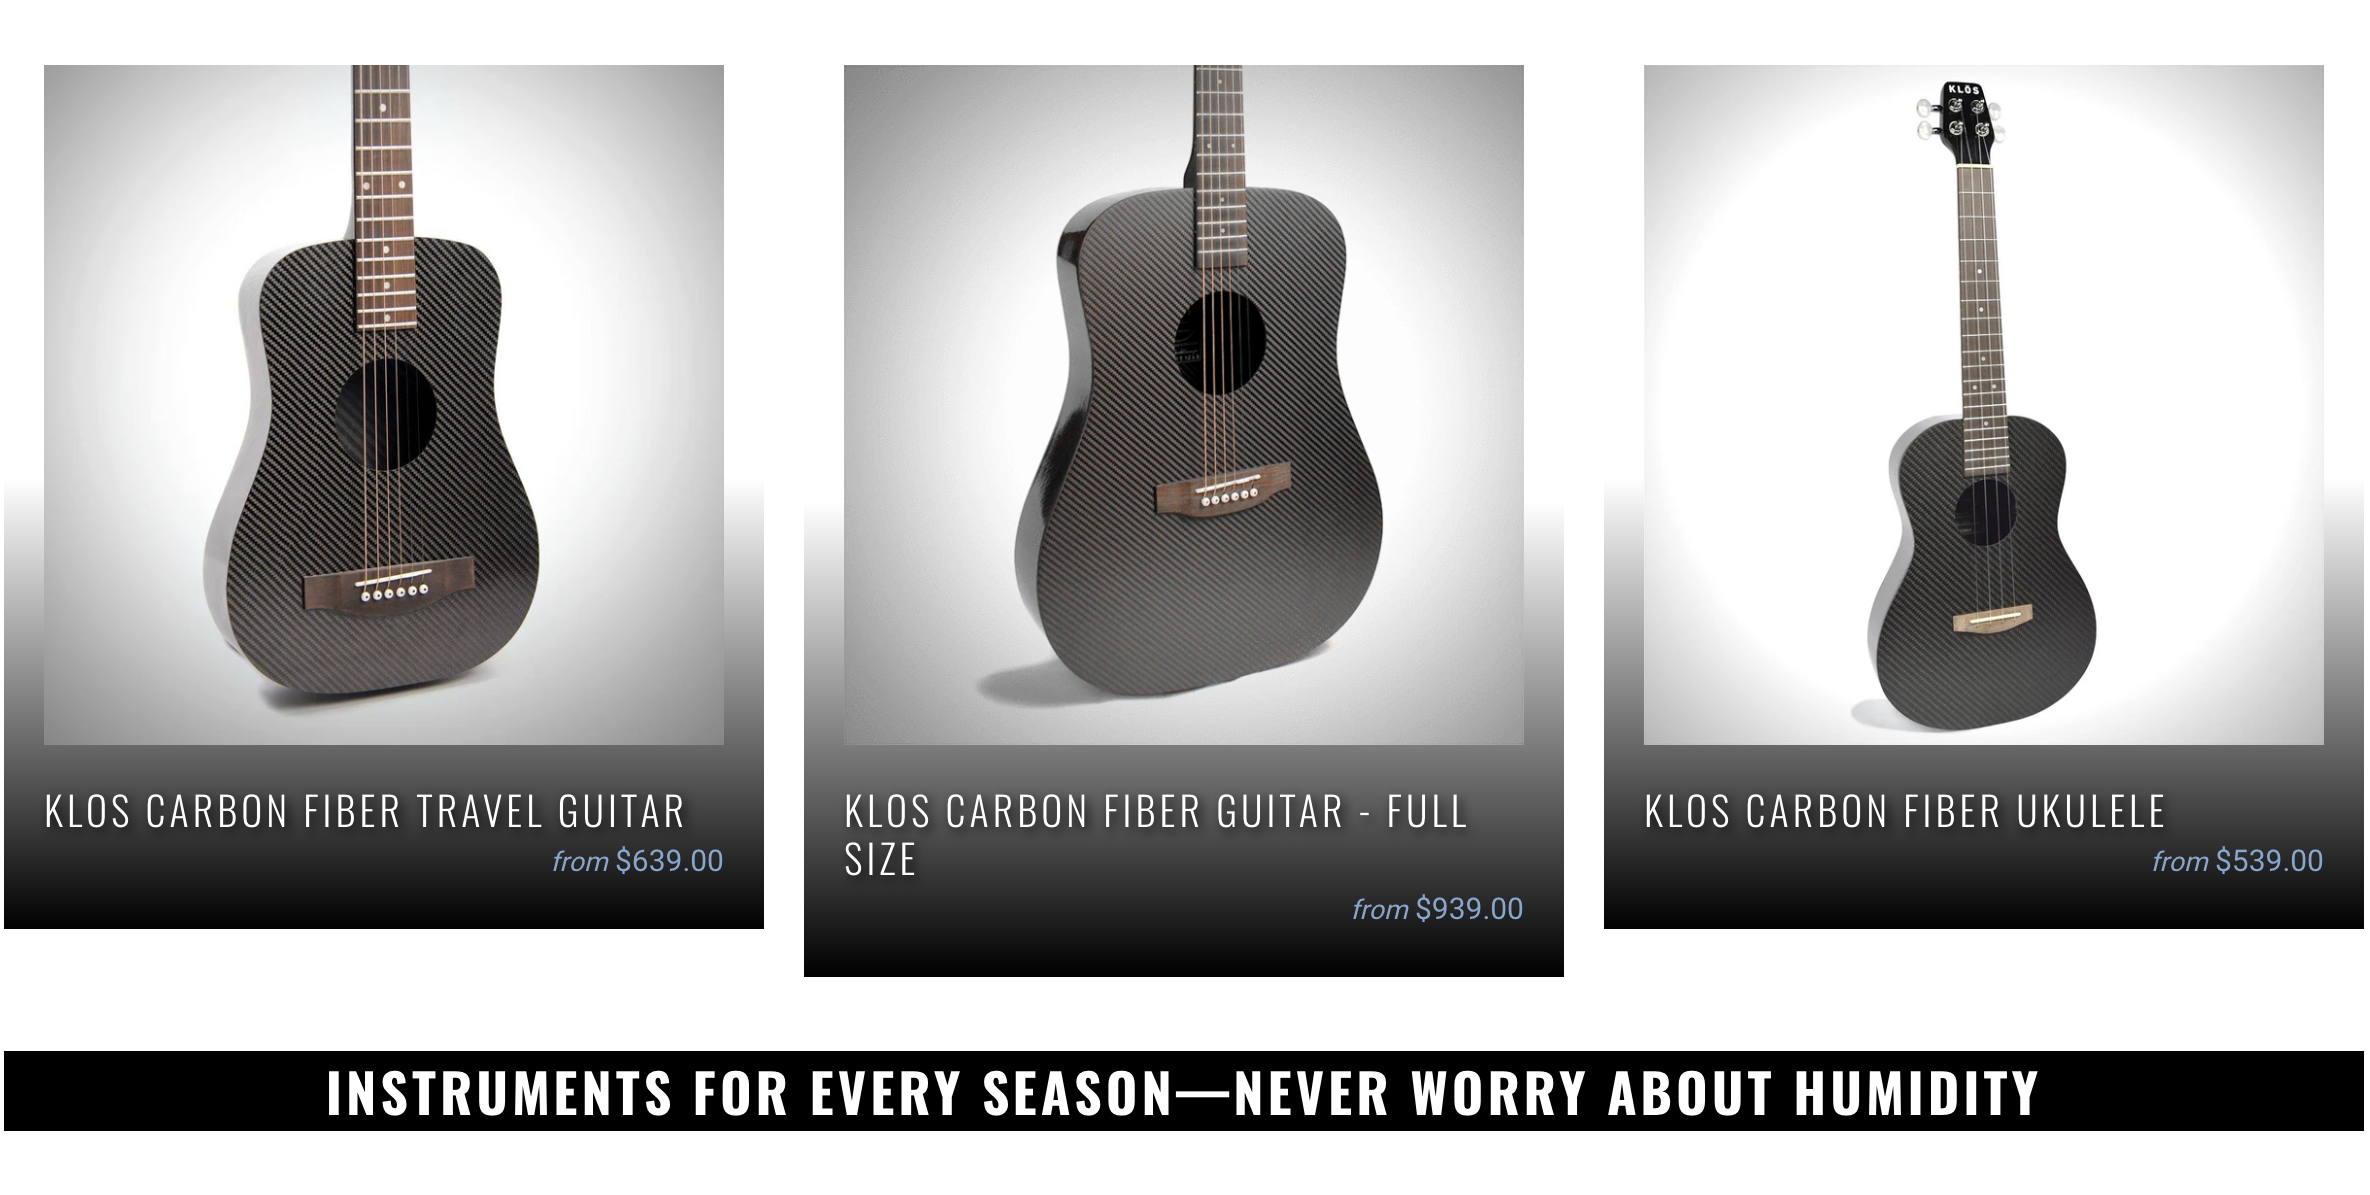 Klos Instruments For Every Season